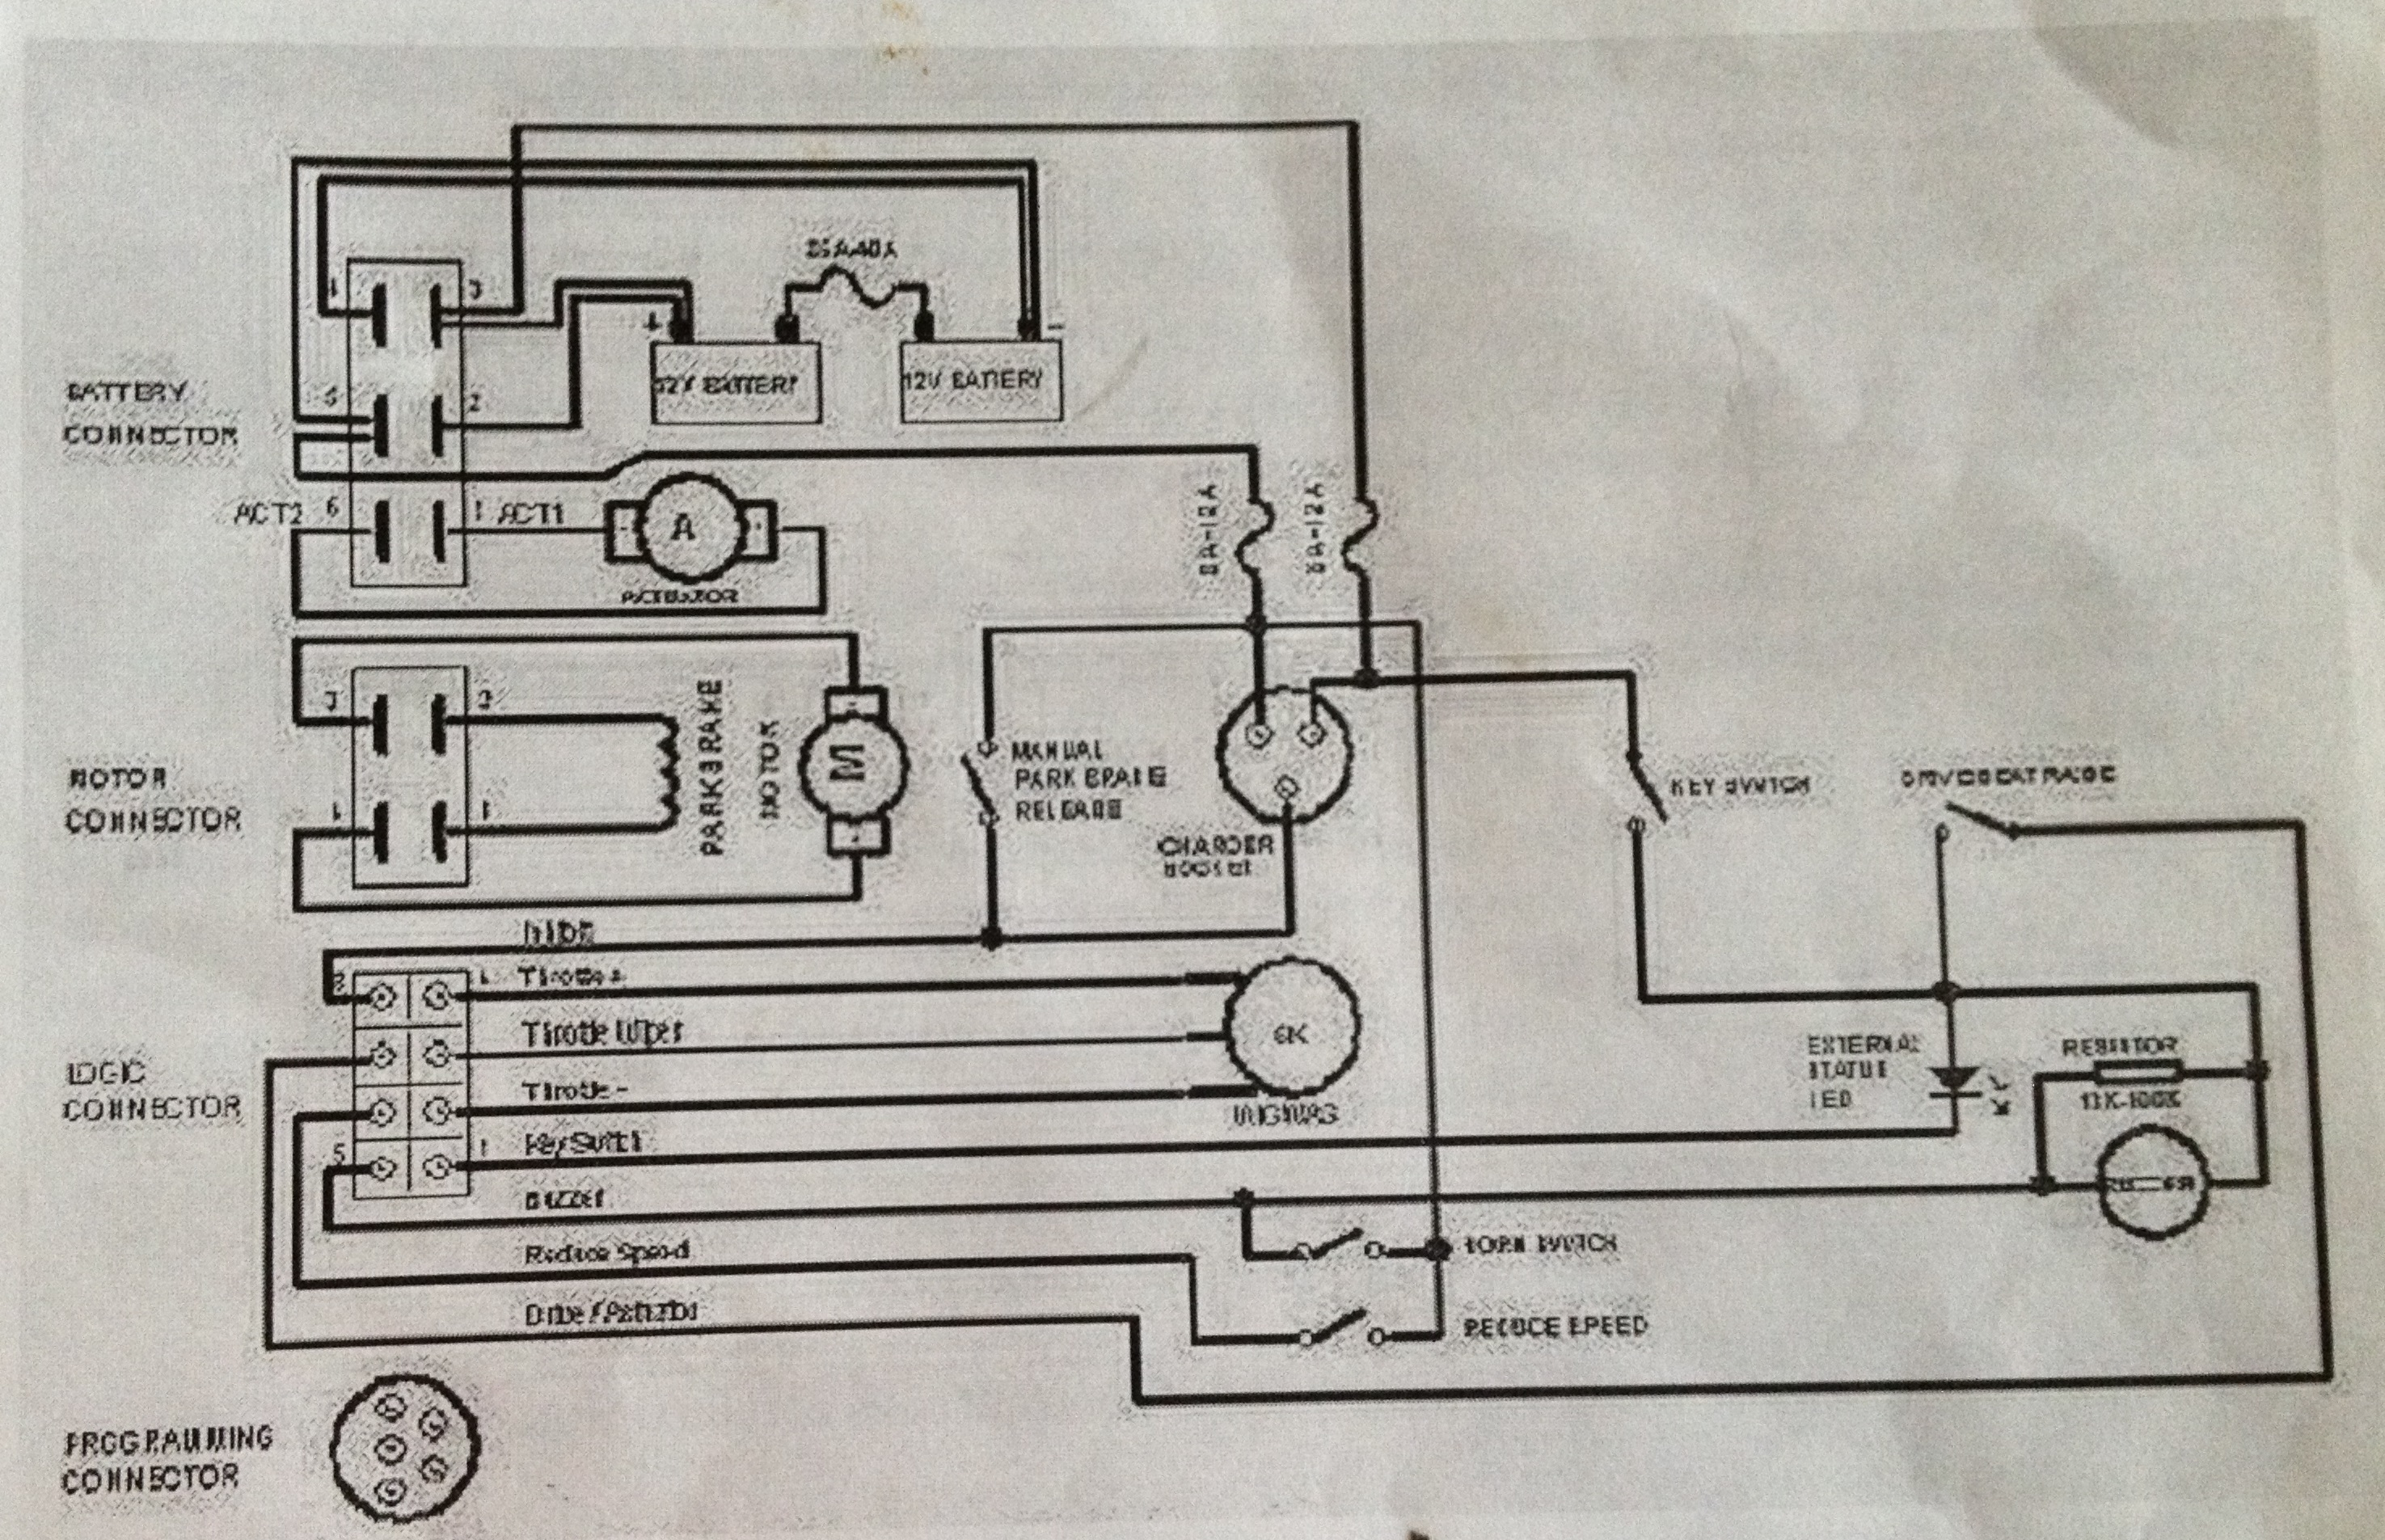 pride wiring harness diagram aa 8788  scooter wiring diagram likewise pride sonic mobility  scooter wiring diagram likewise pride